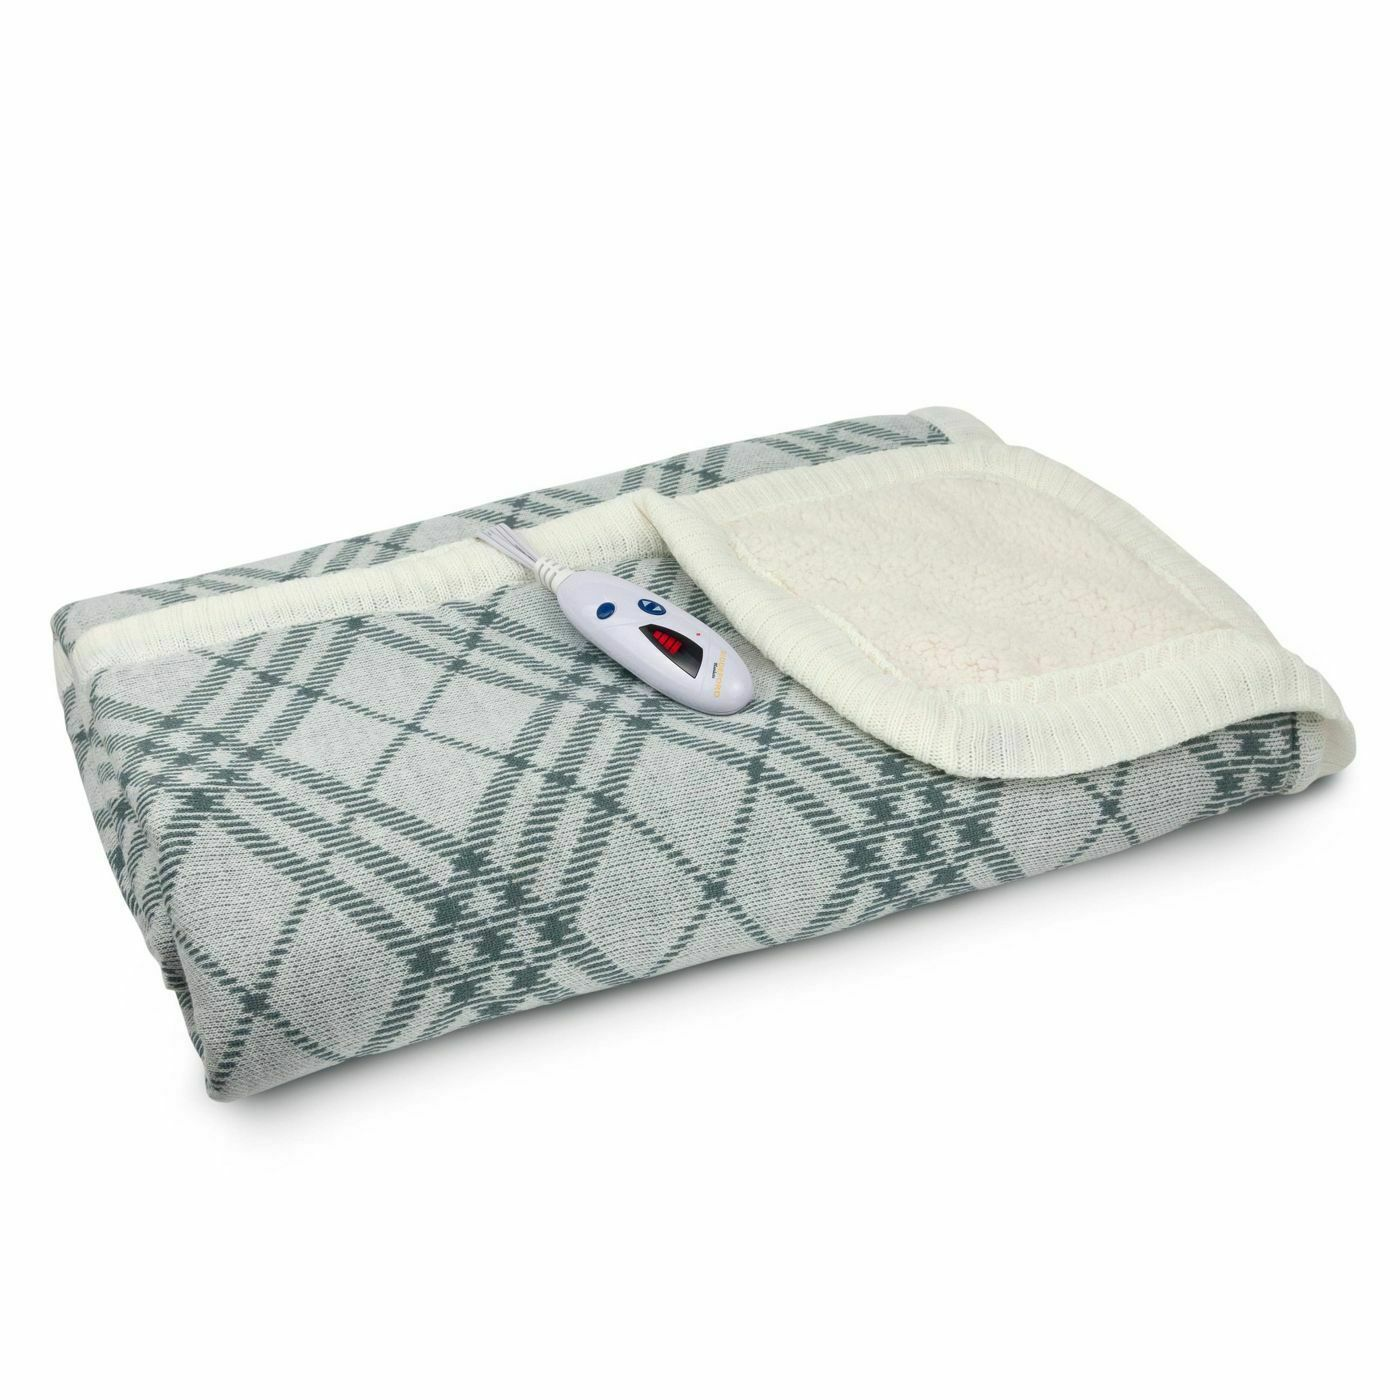 "Biddeford Blankets Electric Throw Blanket - Gray Plaid - Size: 62"" x 50""  NWT-"